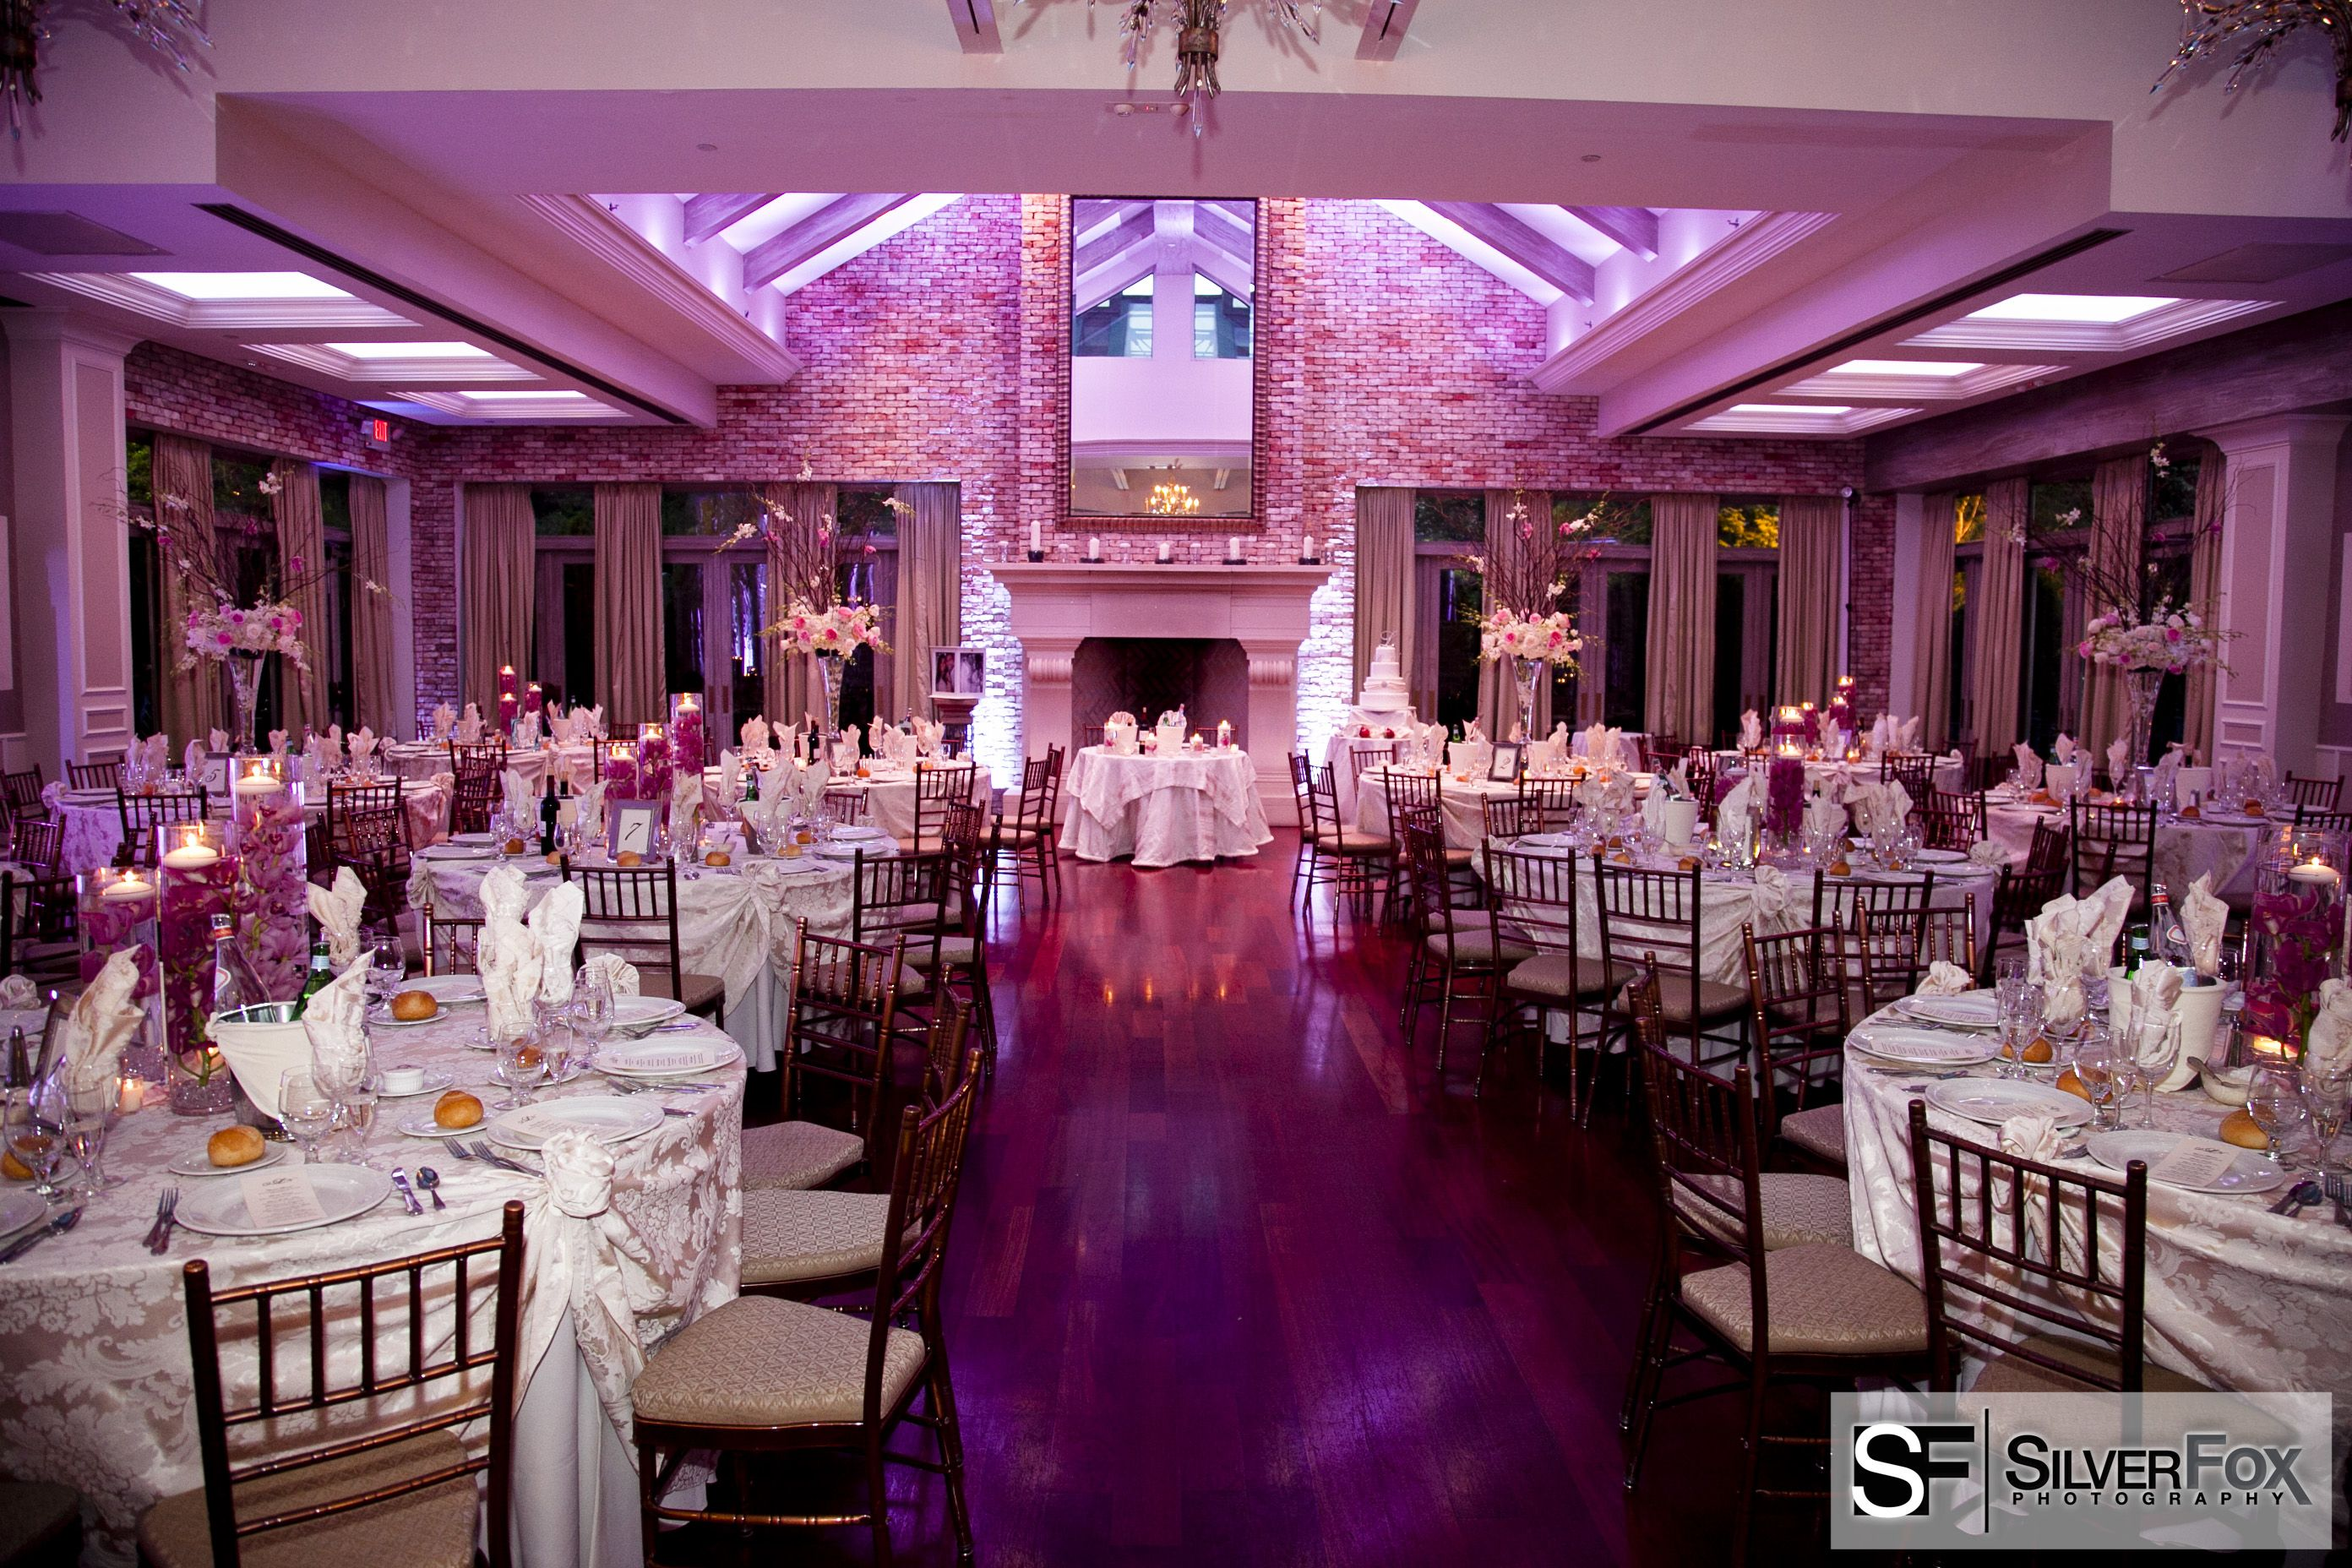 Calling All Foxhollow Brides Photos Of The Somerley By Madeline Fox Gilbert Photography Wedding Venues Long Island Long Island Wedding Wedding Centerpieces